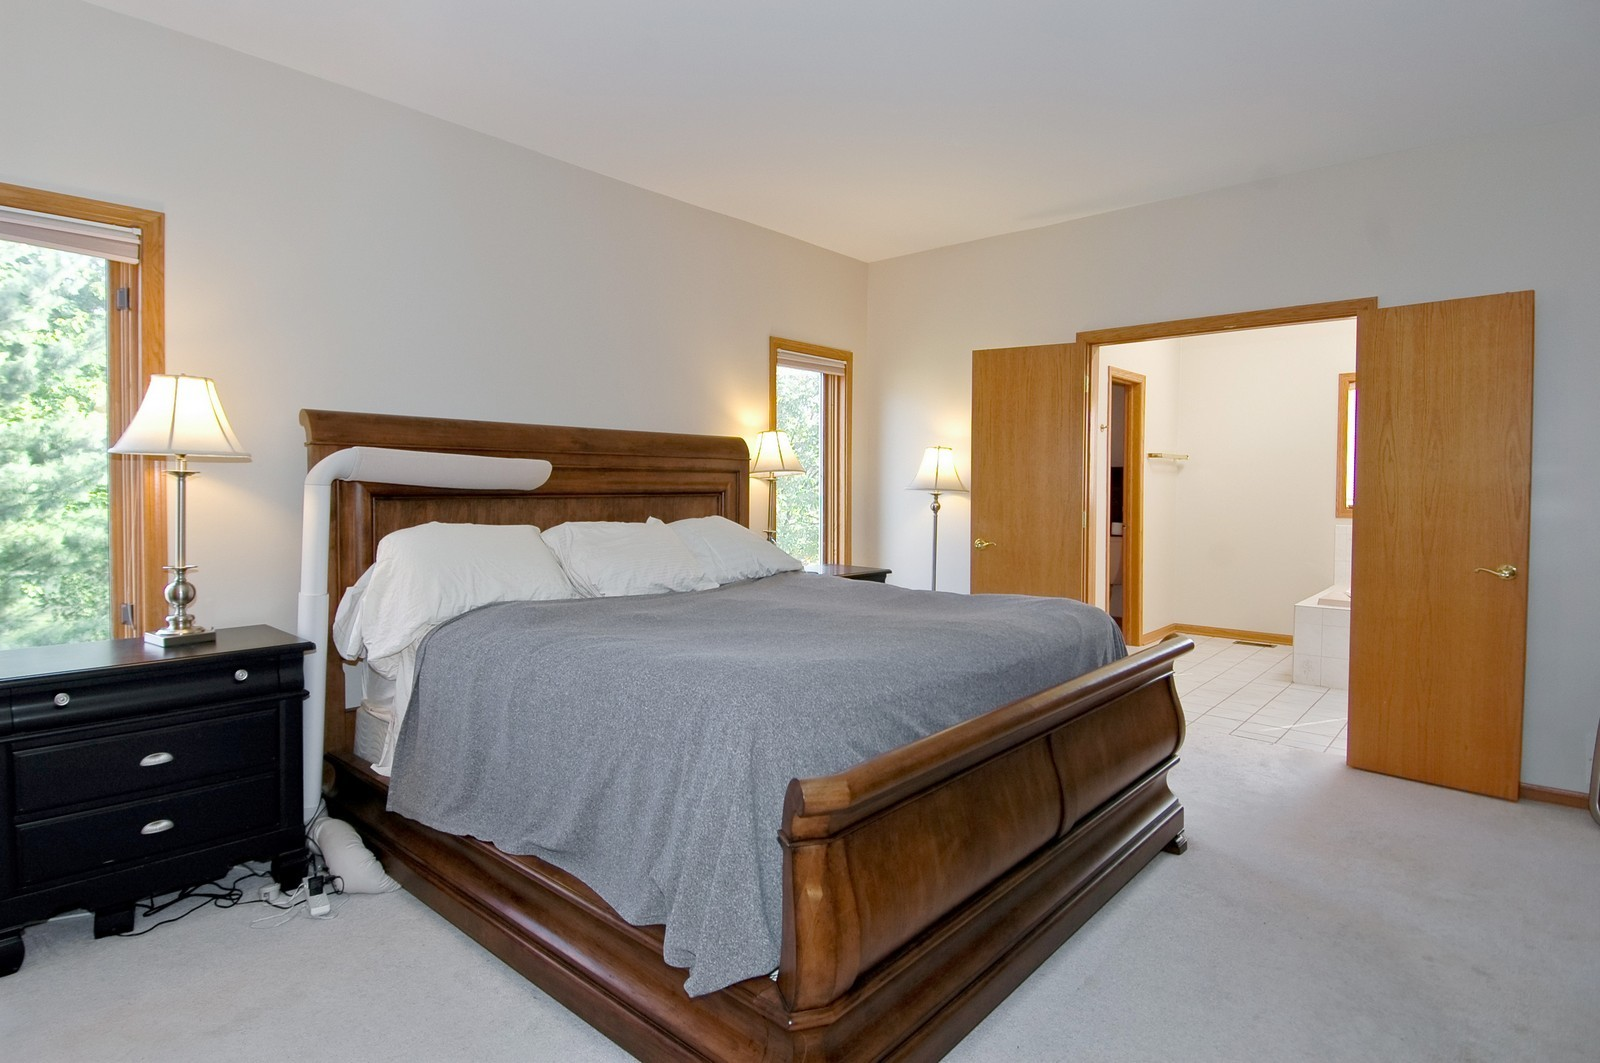 Real Estate Photography - 7N598 Whirlaway Dr, St Charles, IL, 60175 - Master Bedroom